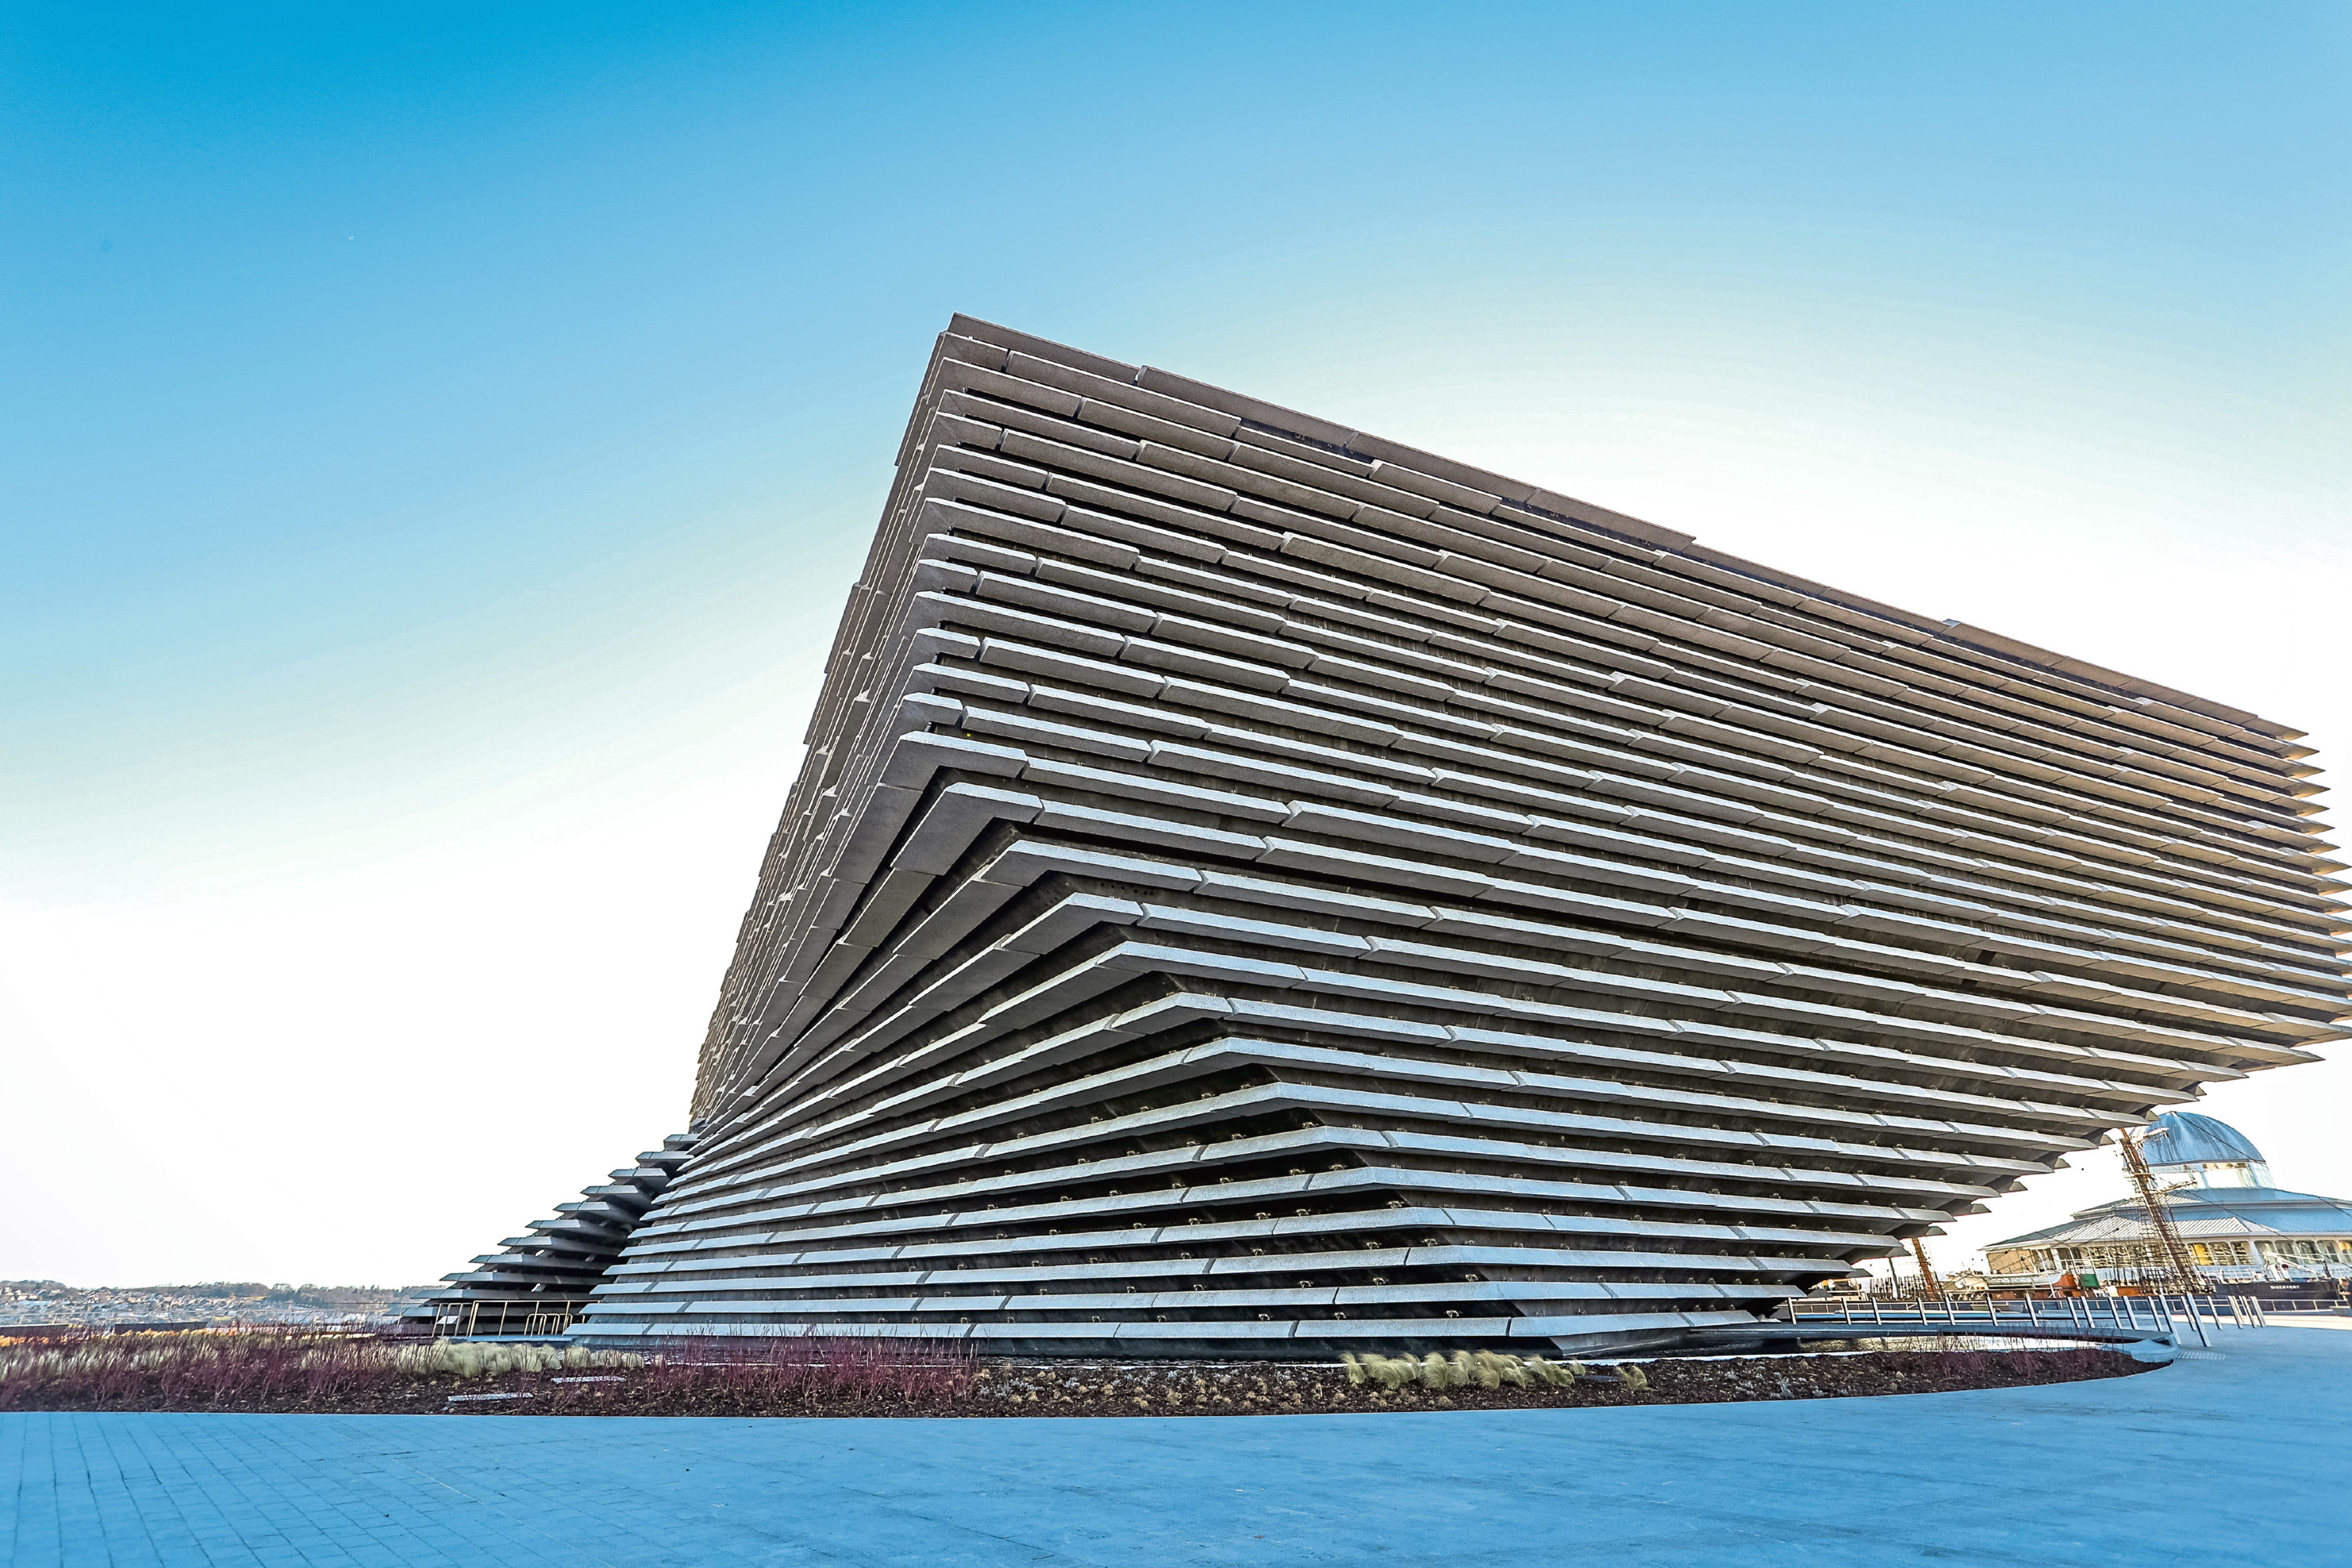 STOCK IMAGE: The V & A Museum, Dundee - Friday 9 February 2018